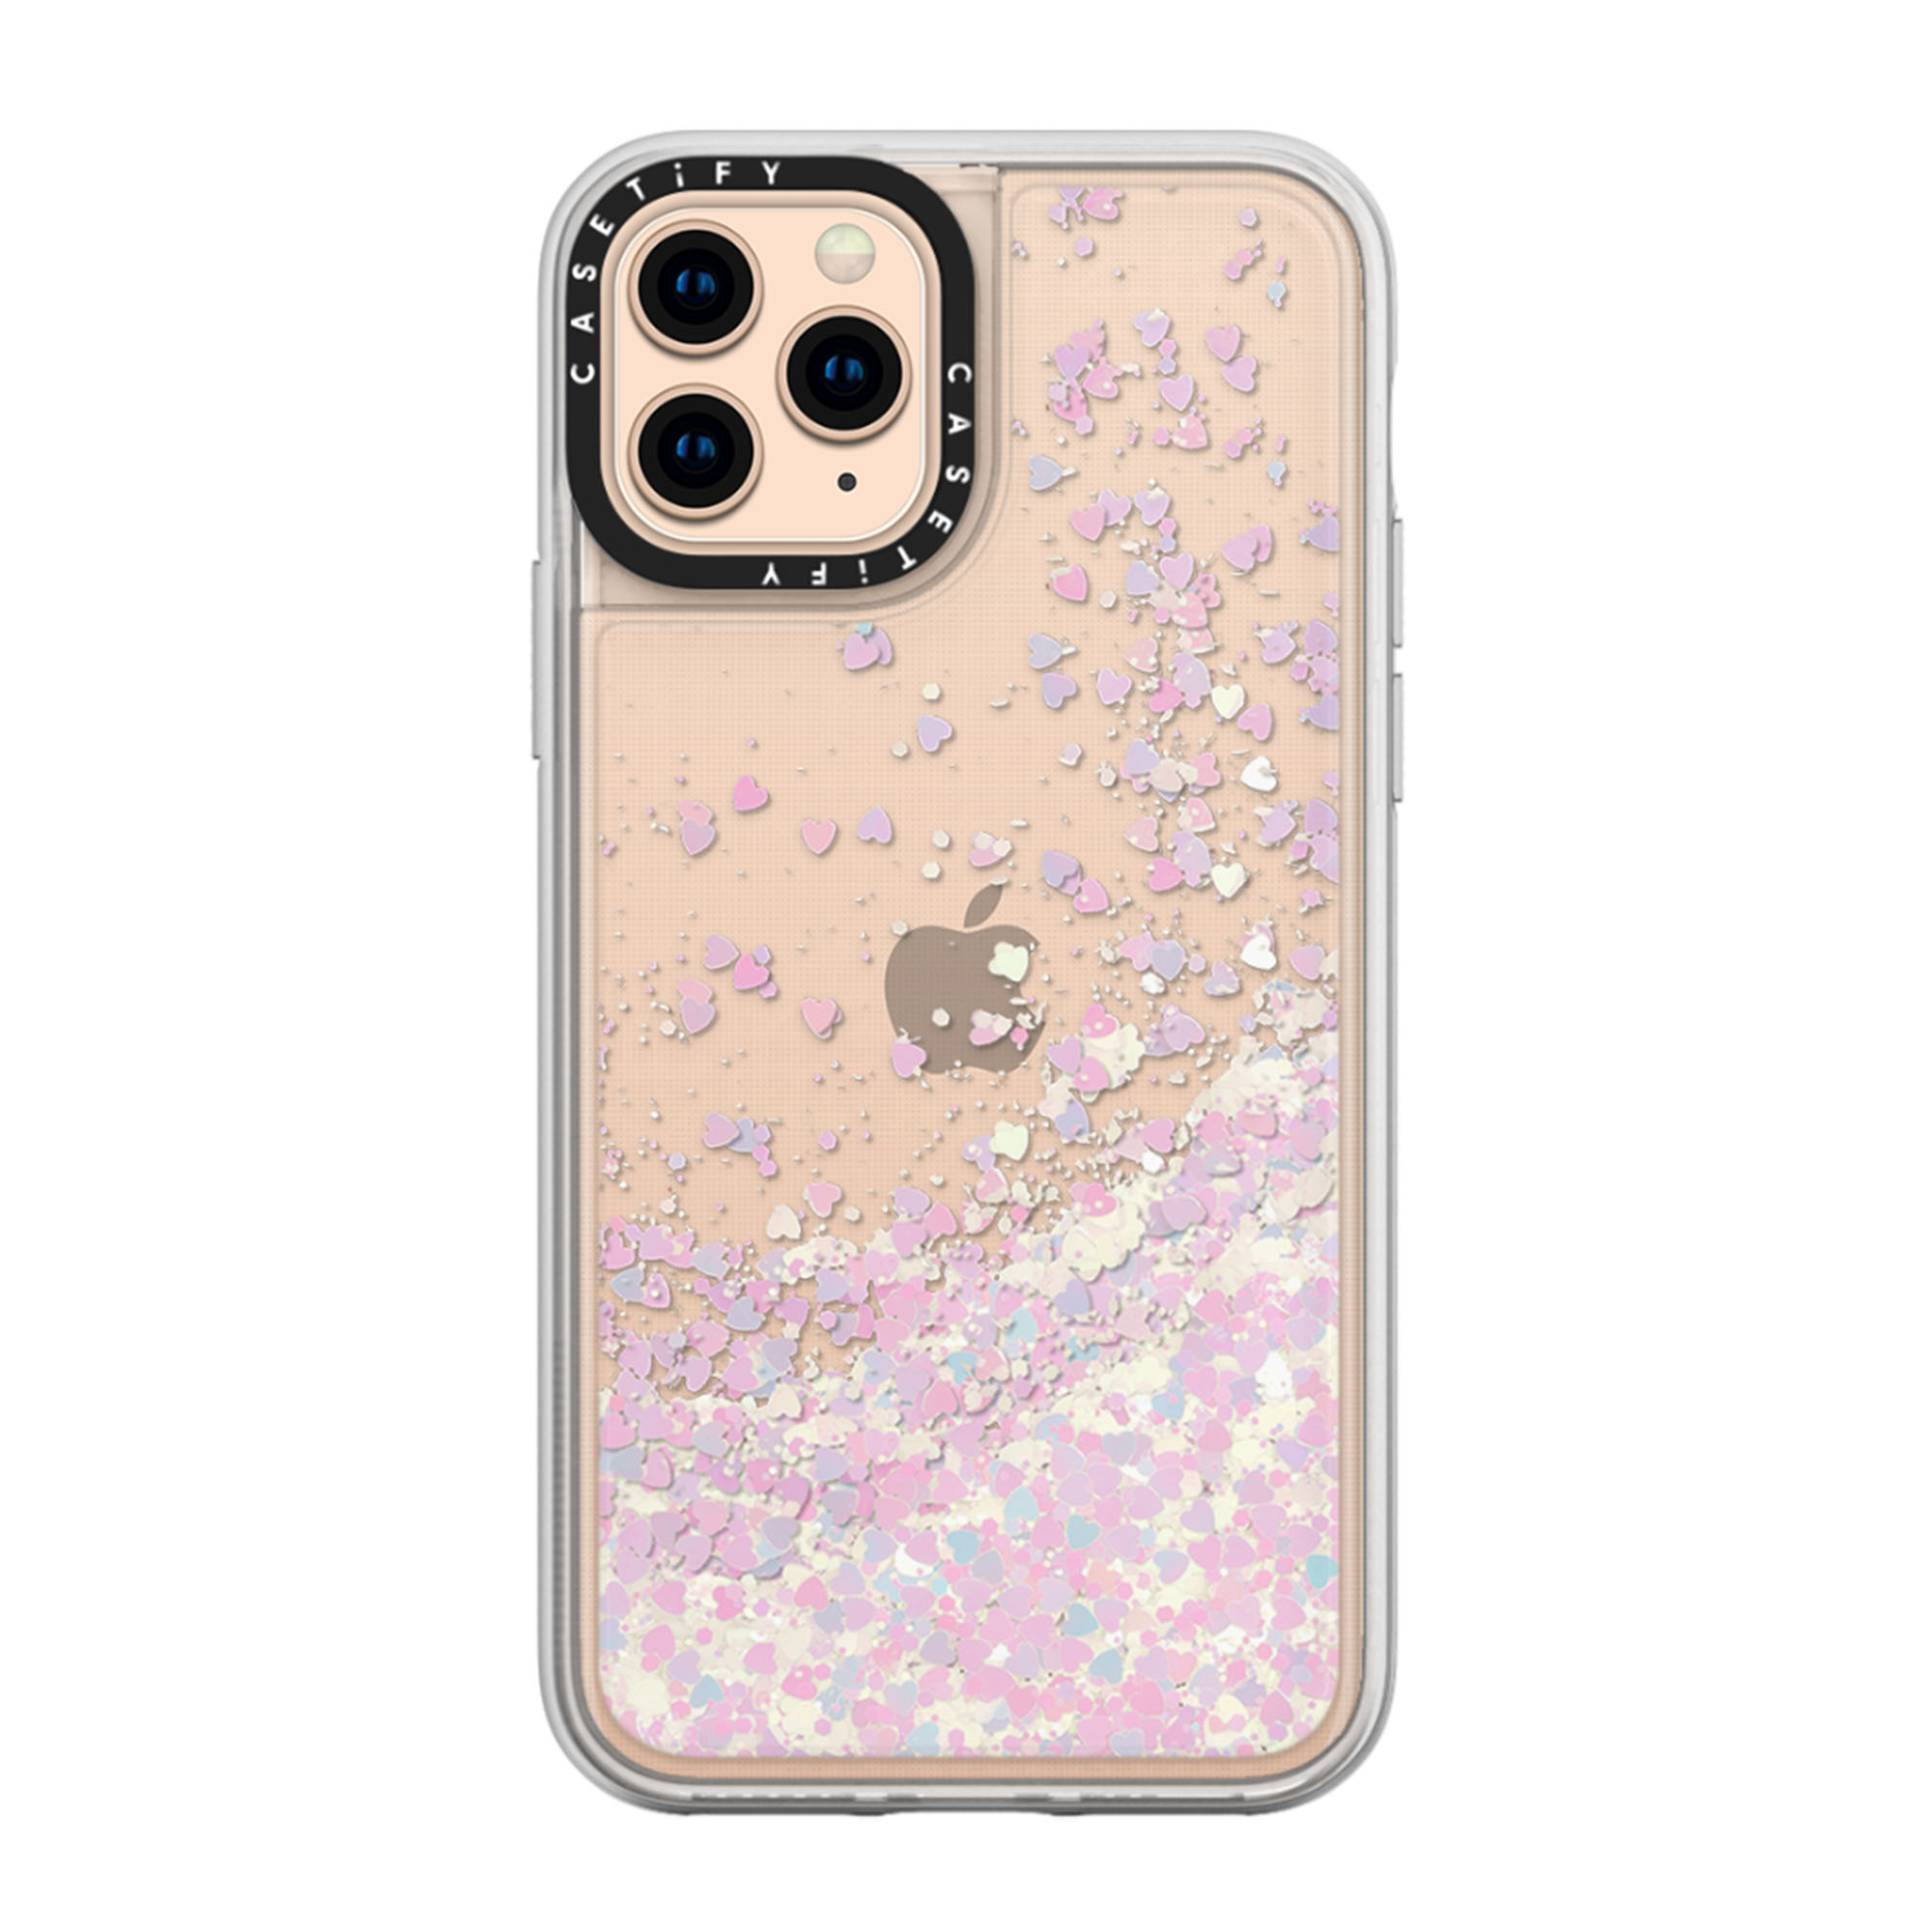 Casetify Say My Name Glitter Initial Phone Case